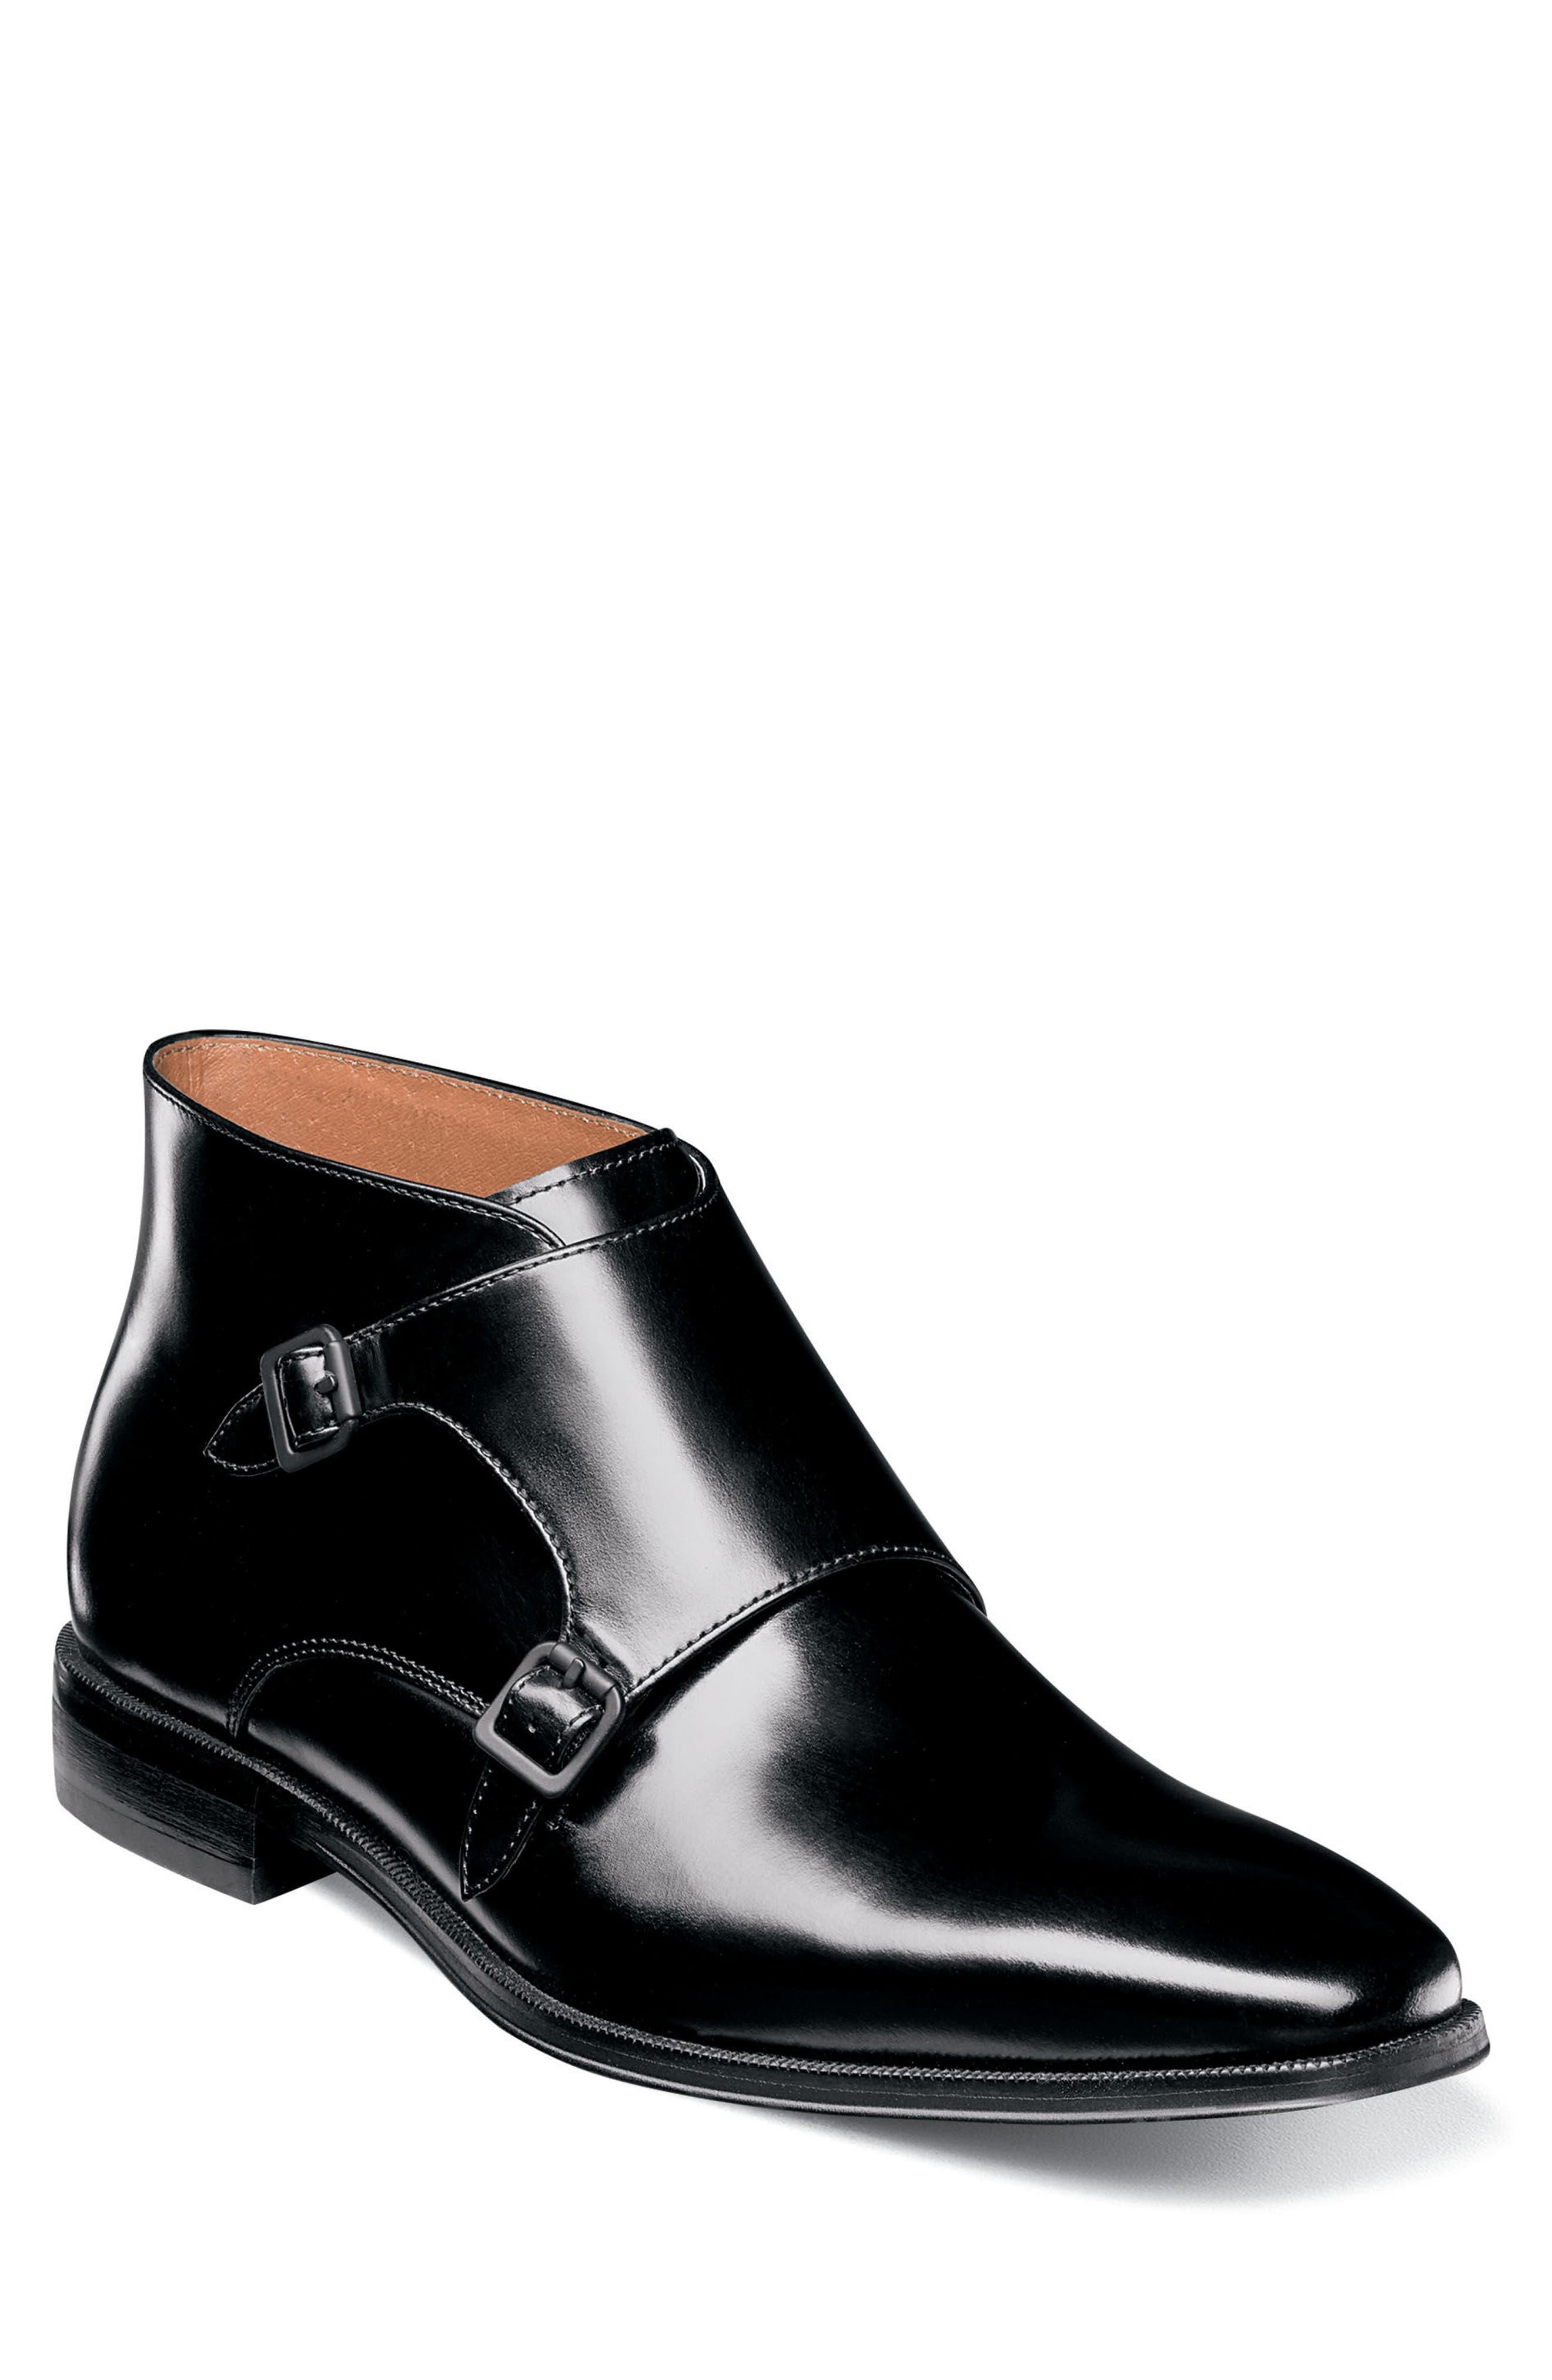 Belfast Double Monk Strap Boot,                             Main thumbnail 1, color,